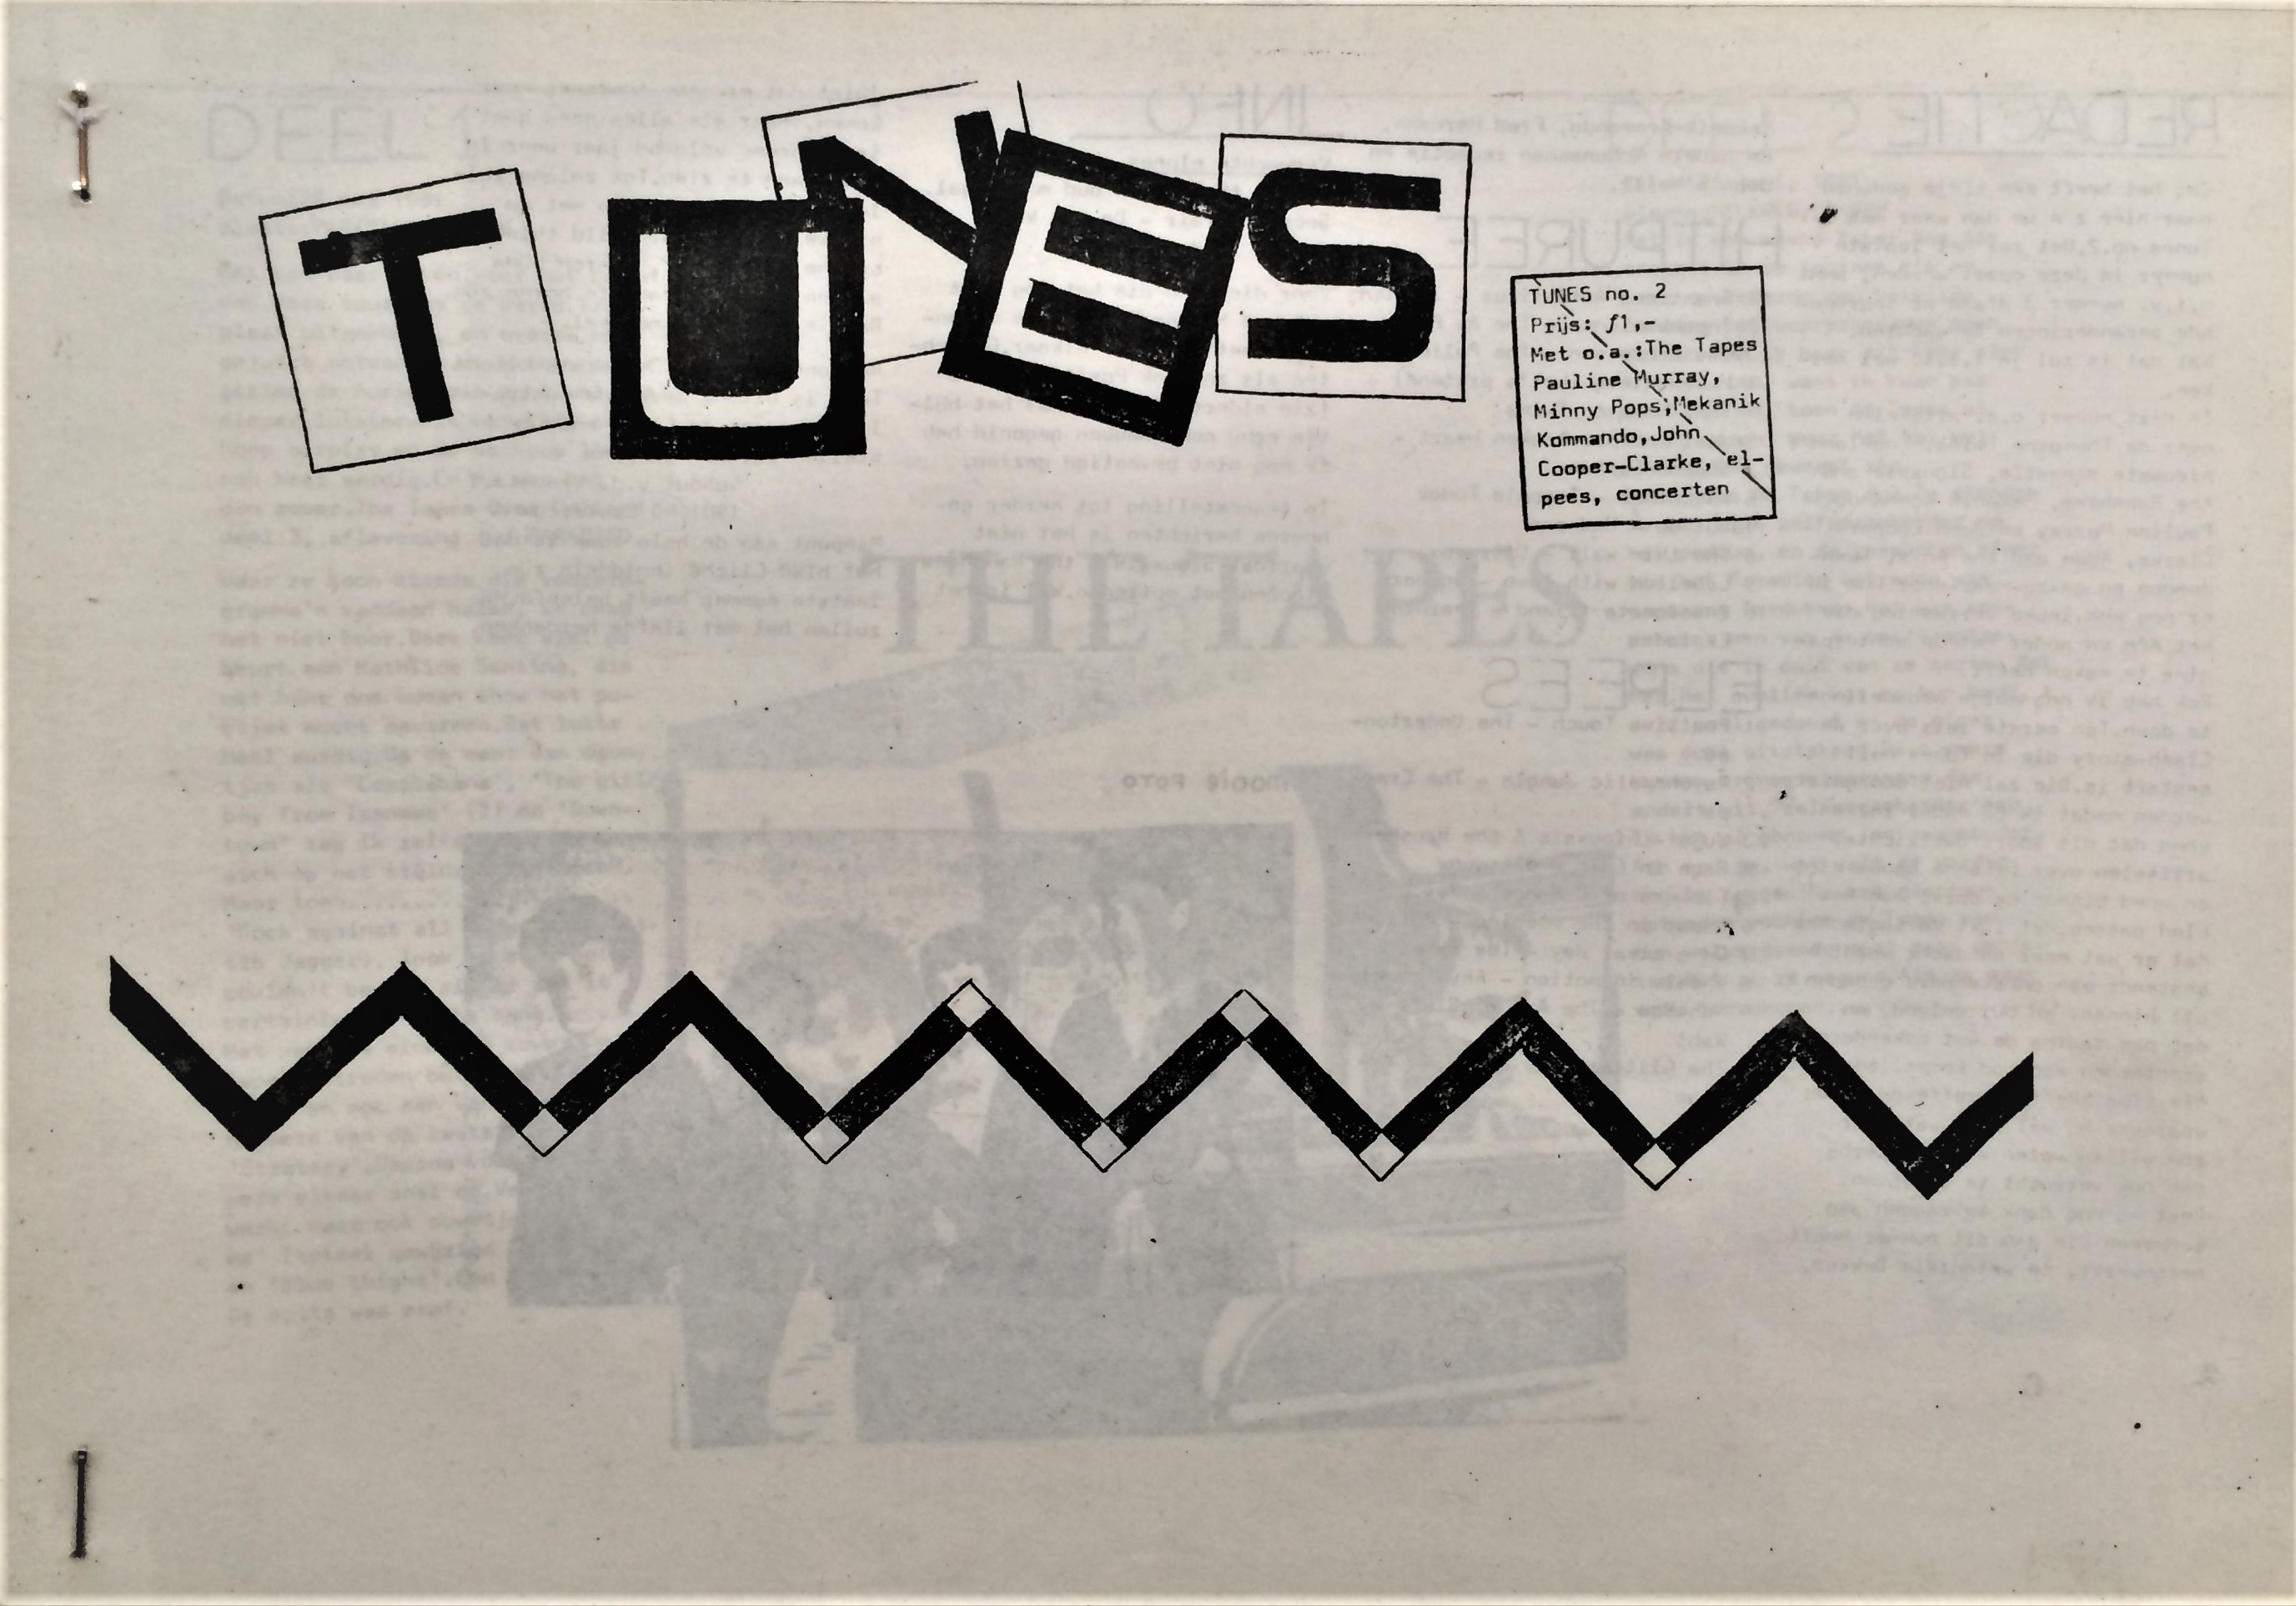 Tunes-Issue-2-The-Tapes-Pauline-Murray-Minny-Pops-Mekanik-kommando-John-Cooper-Clarke-Elpees-concert